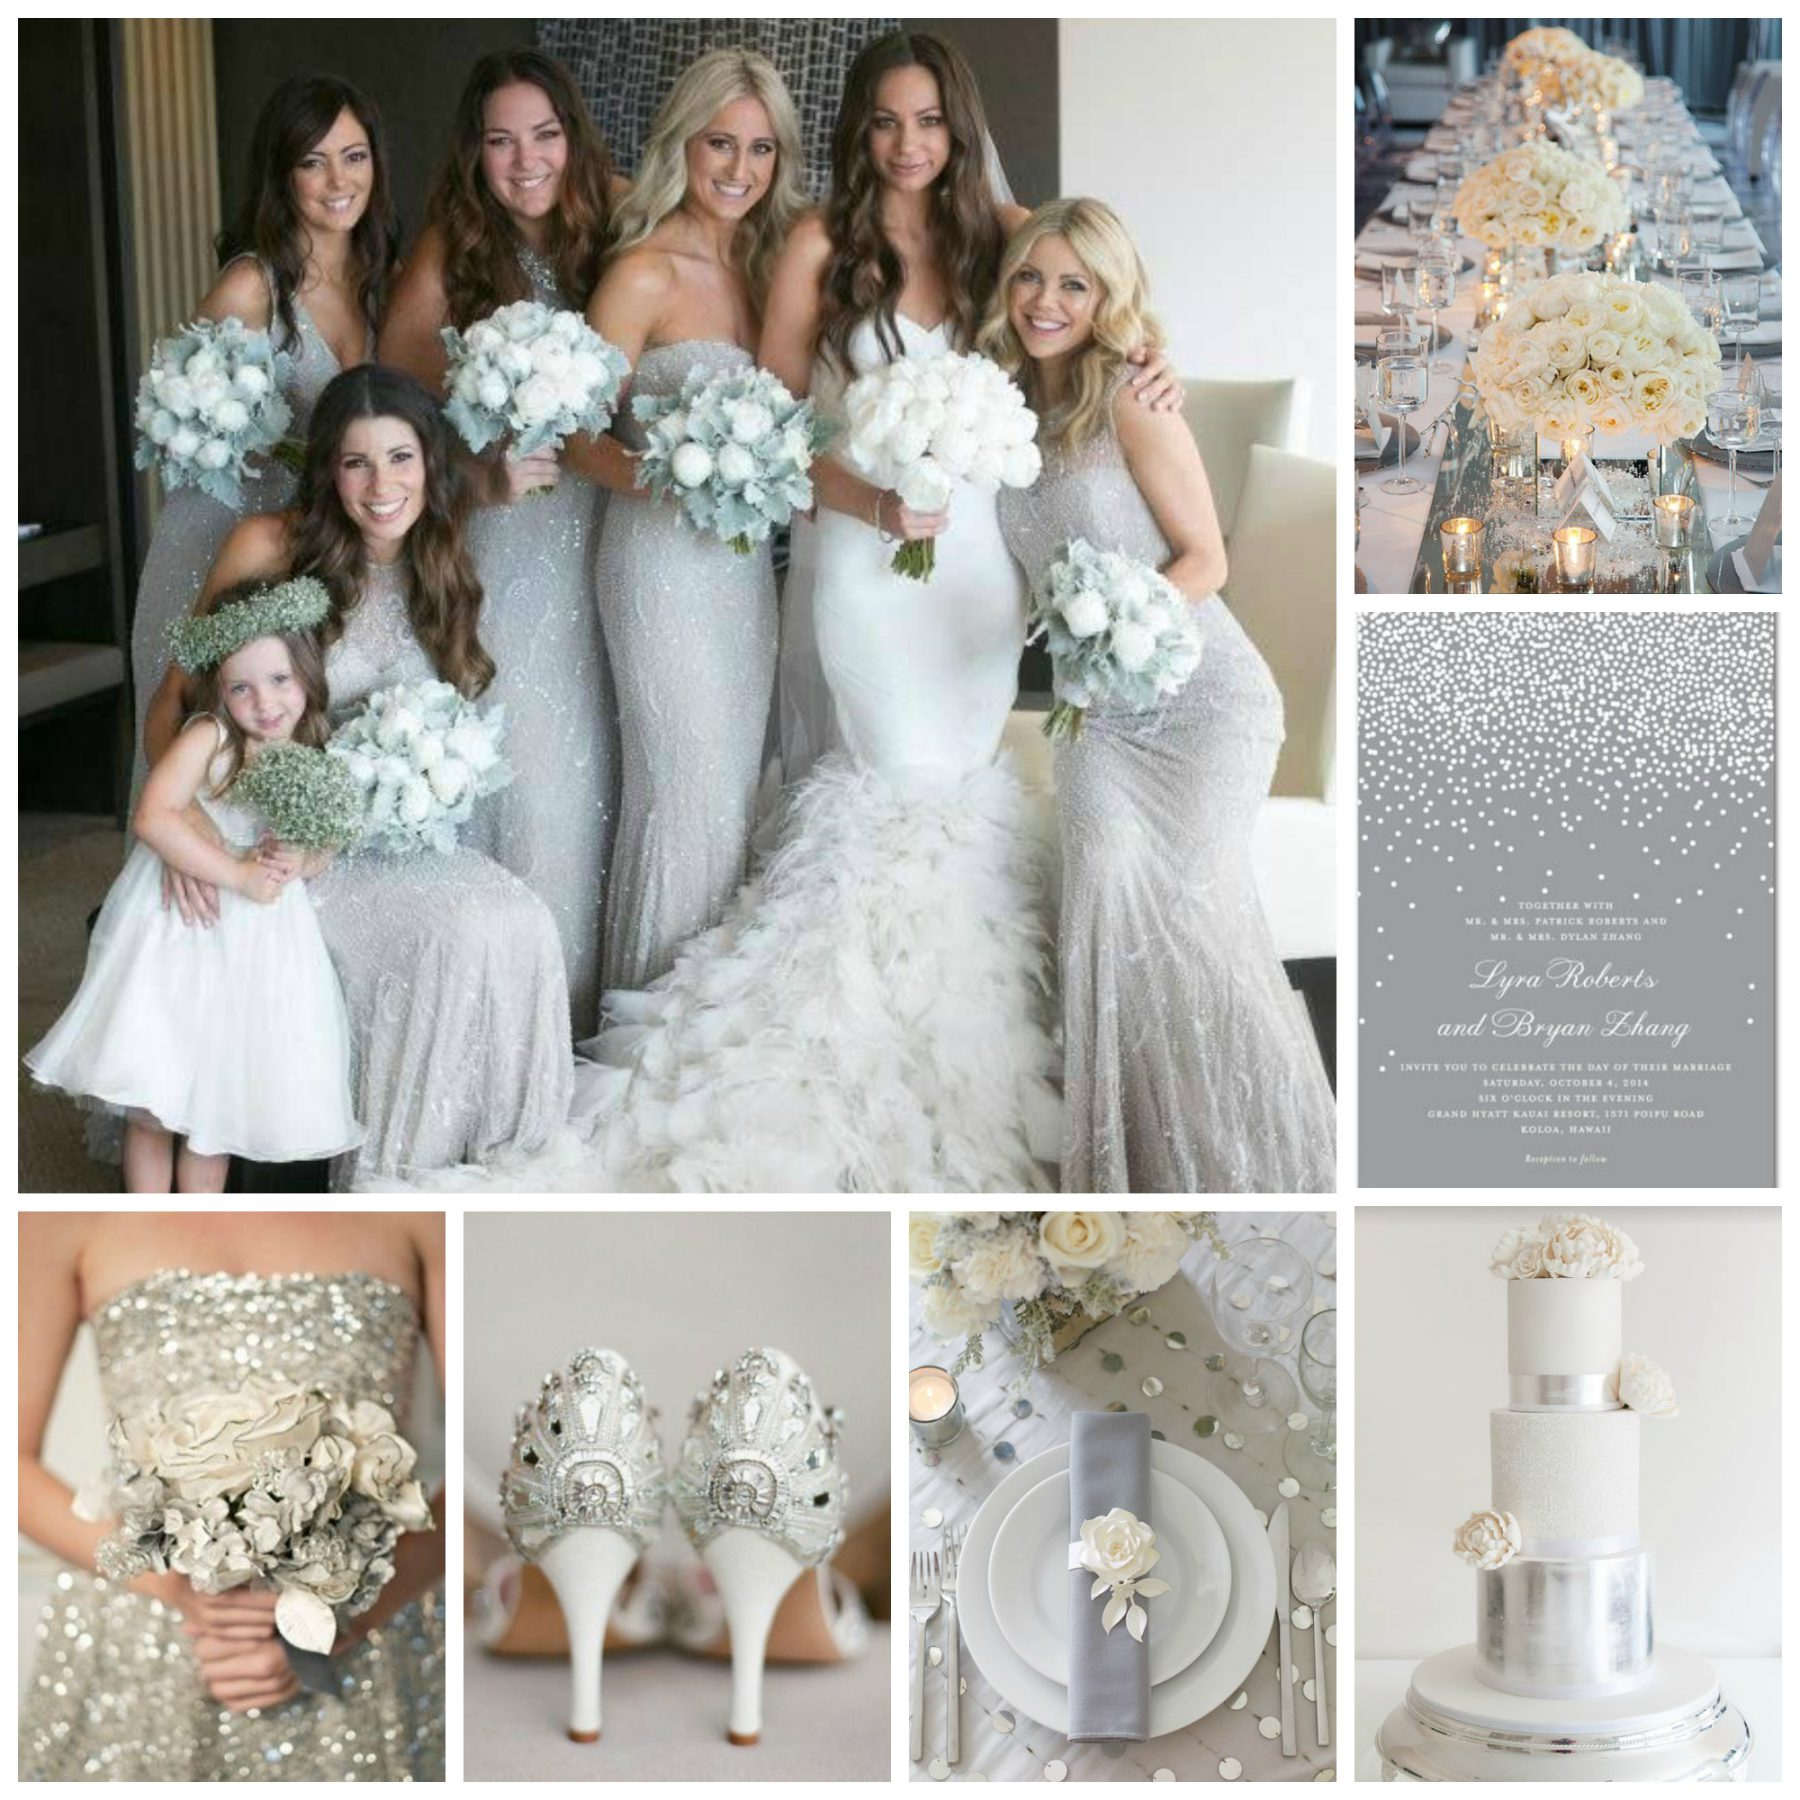 Silver & White Wedding Inspiration - Burgh Brides